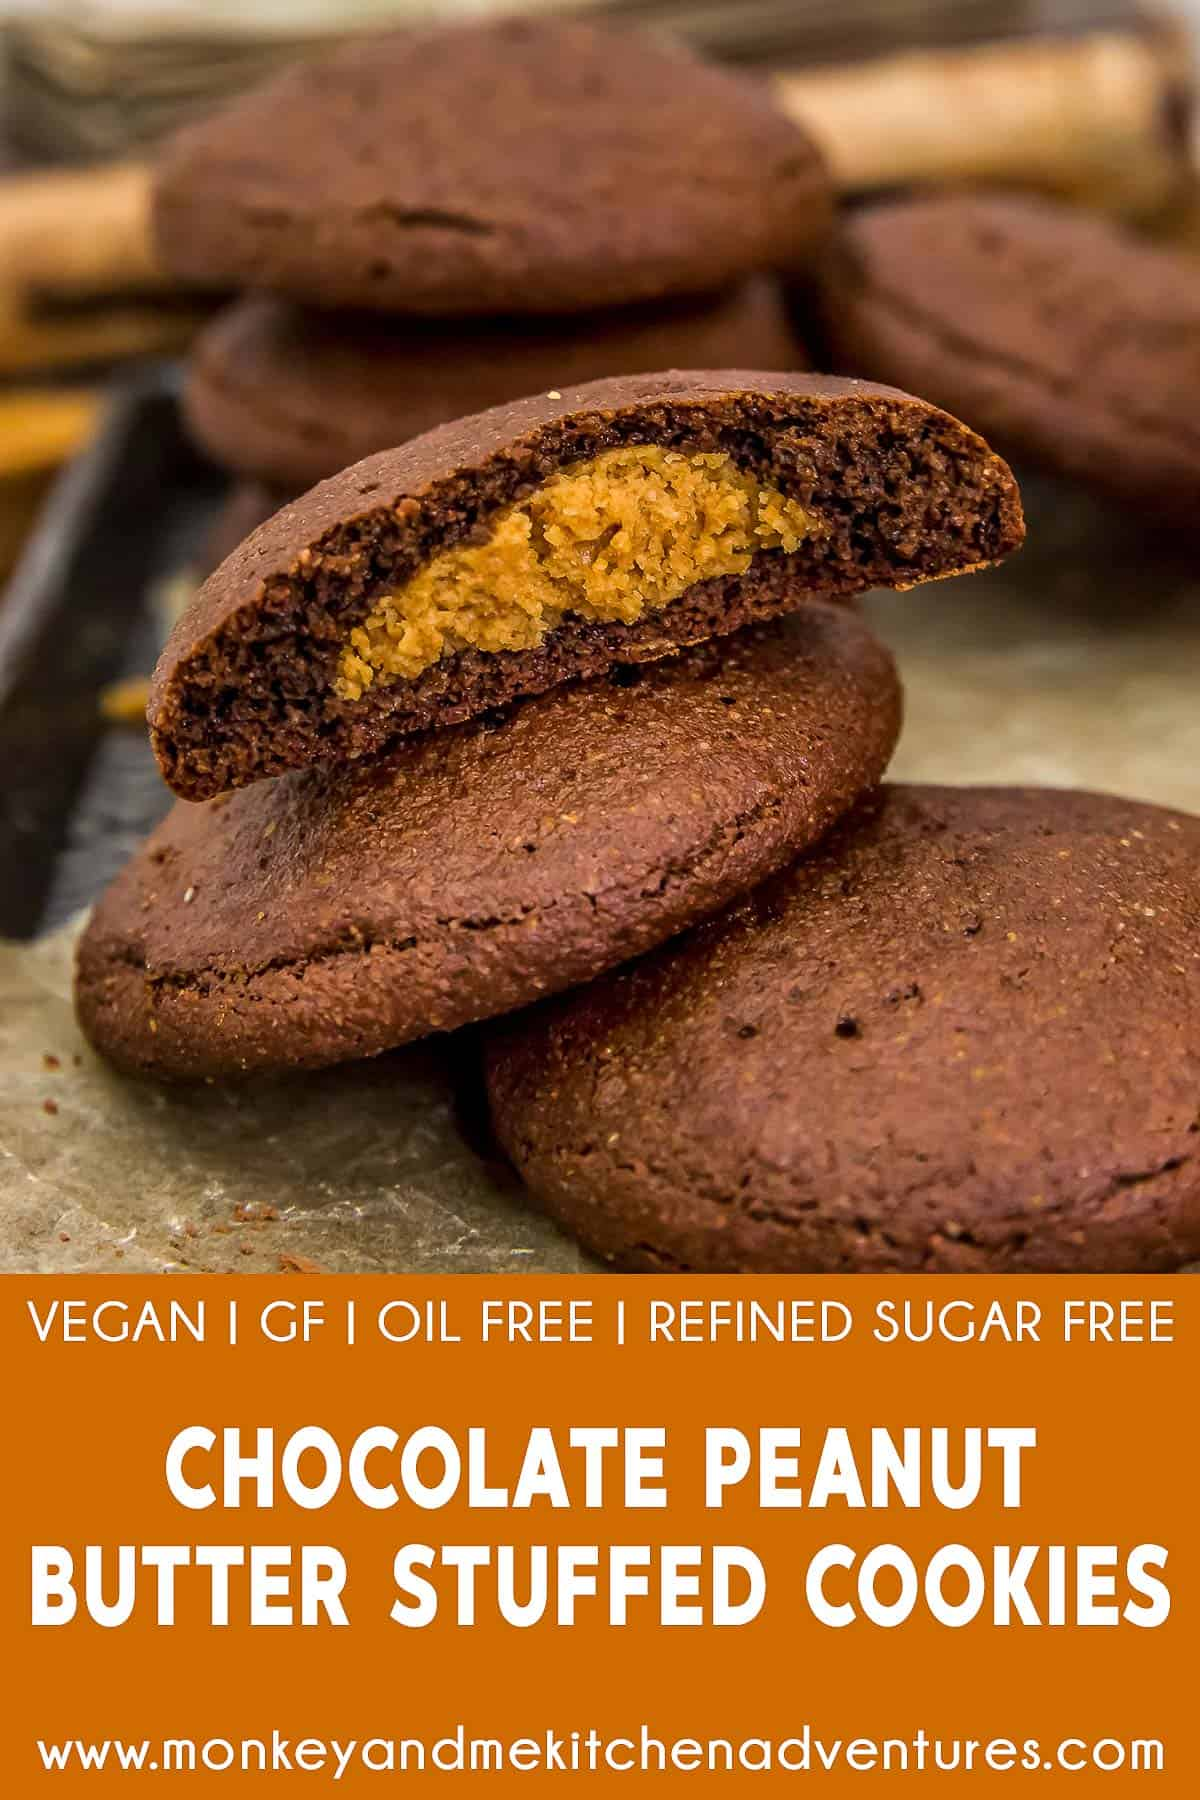 Chocolate Peanut Butter Stuffed Cookies with text description